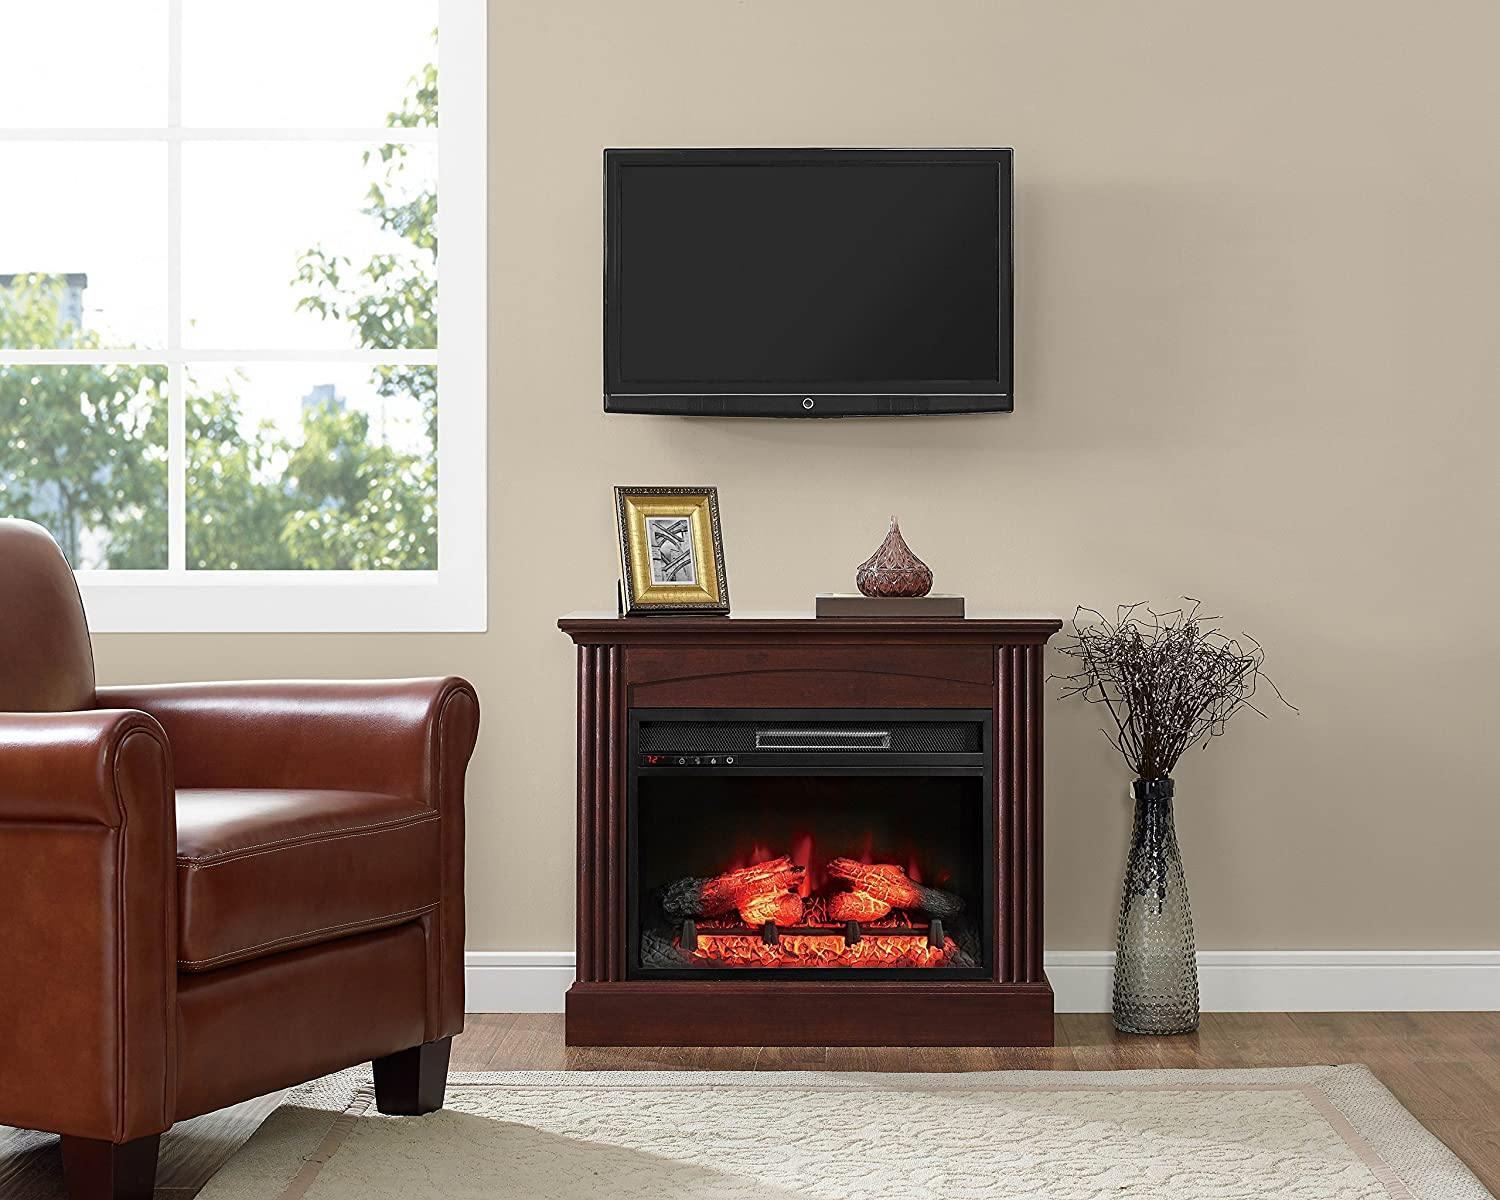 Pleasant Whalen Furniture Fp32Ec23I 1Bc Fully Assembled Chesapeake Mantel Electric Fireplace Brown Cherry 32 Download Free Architecture Designs Grimeyleaguecom